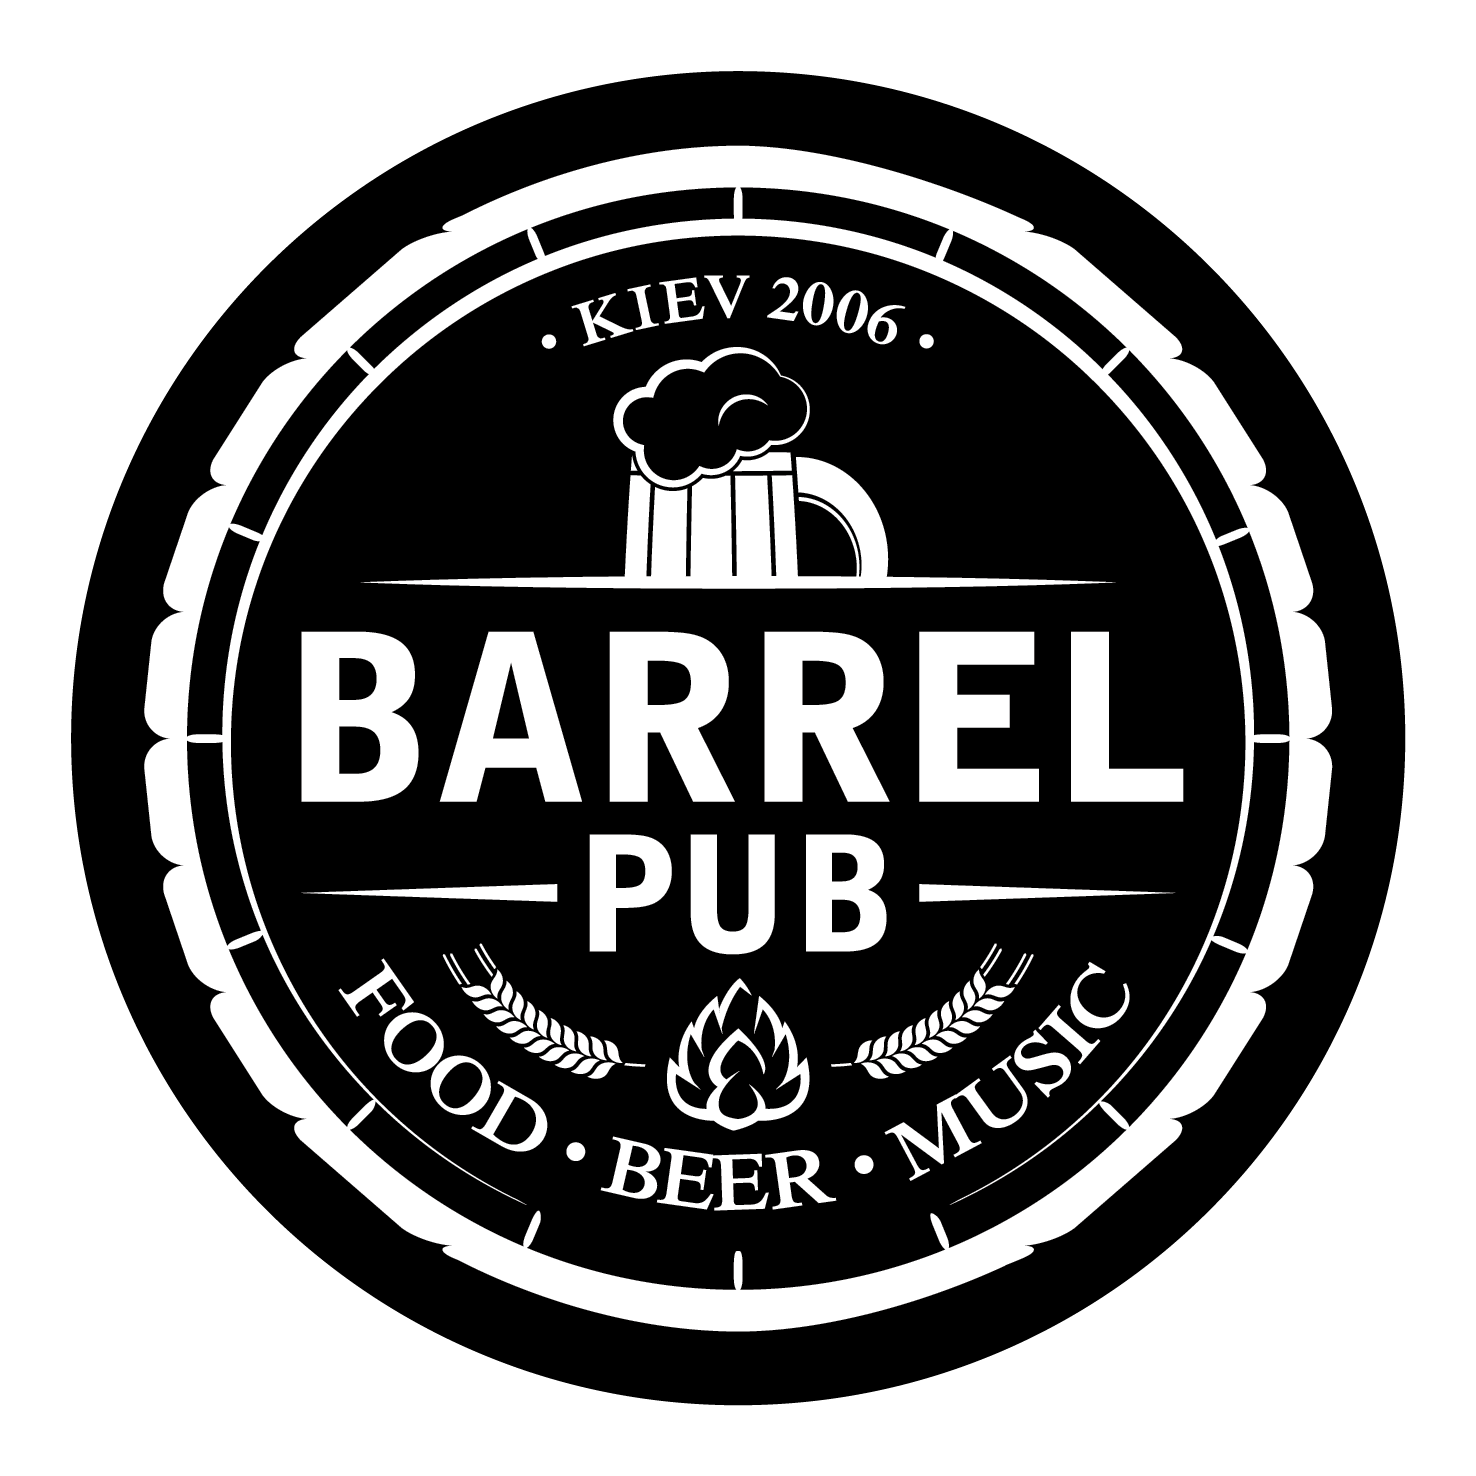 Barrel PUB